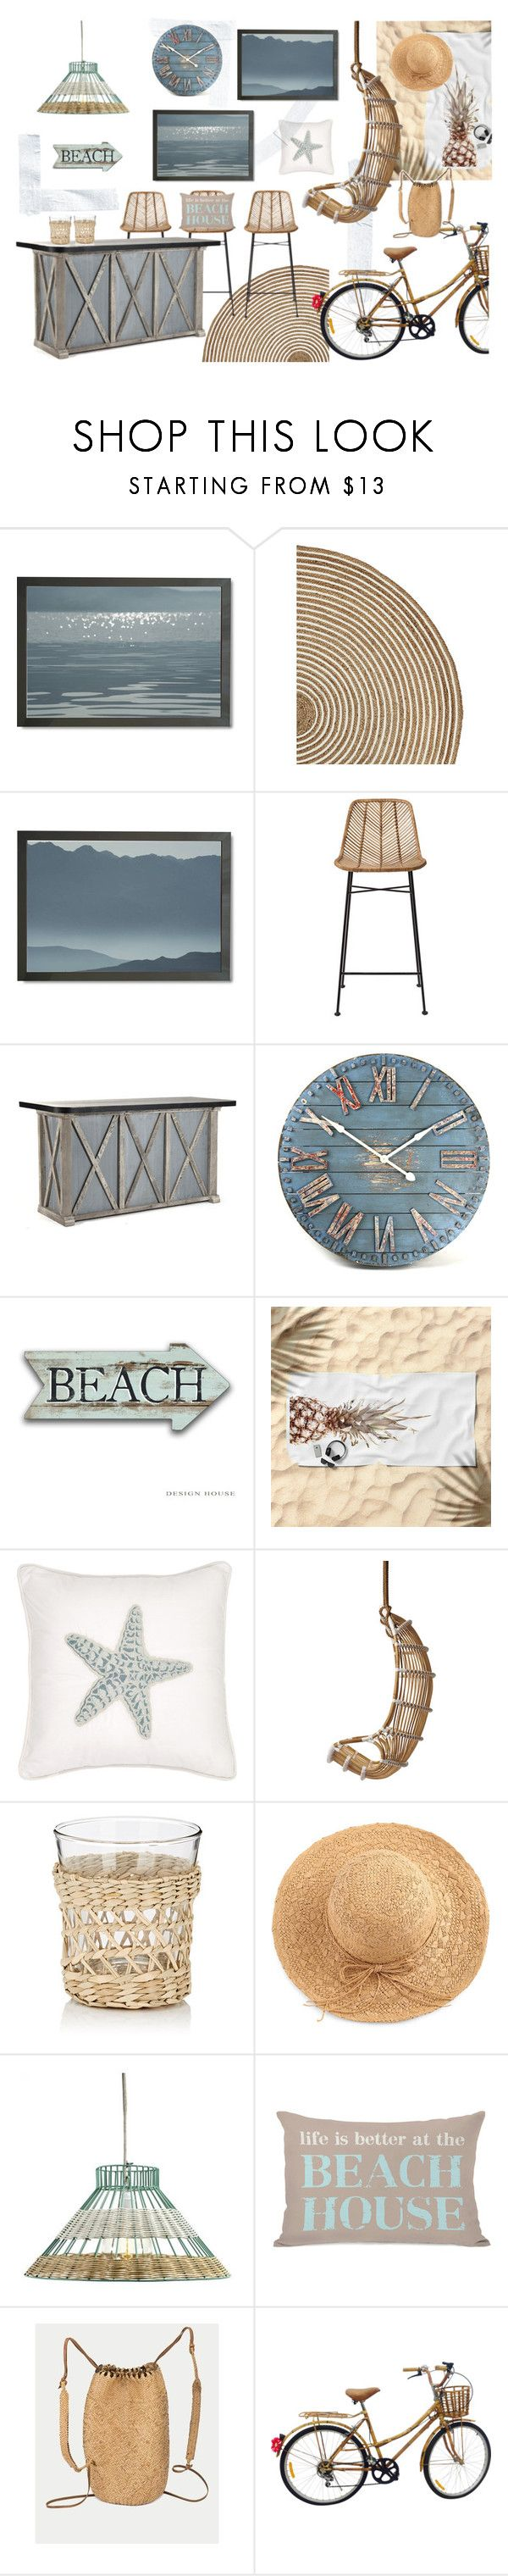 Beach House by kacix on Polyvore featuring interior, interiors, interior design, home, home decor, interior decorating, Zentique, Bloomingville, Holly's House and Serena & Lily